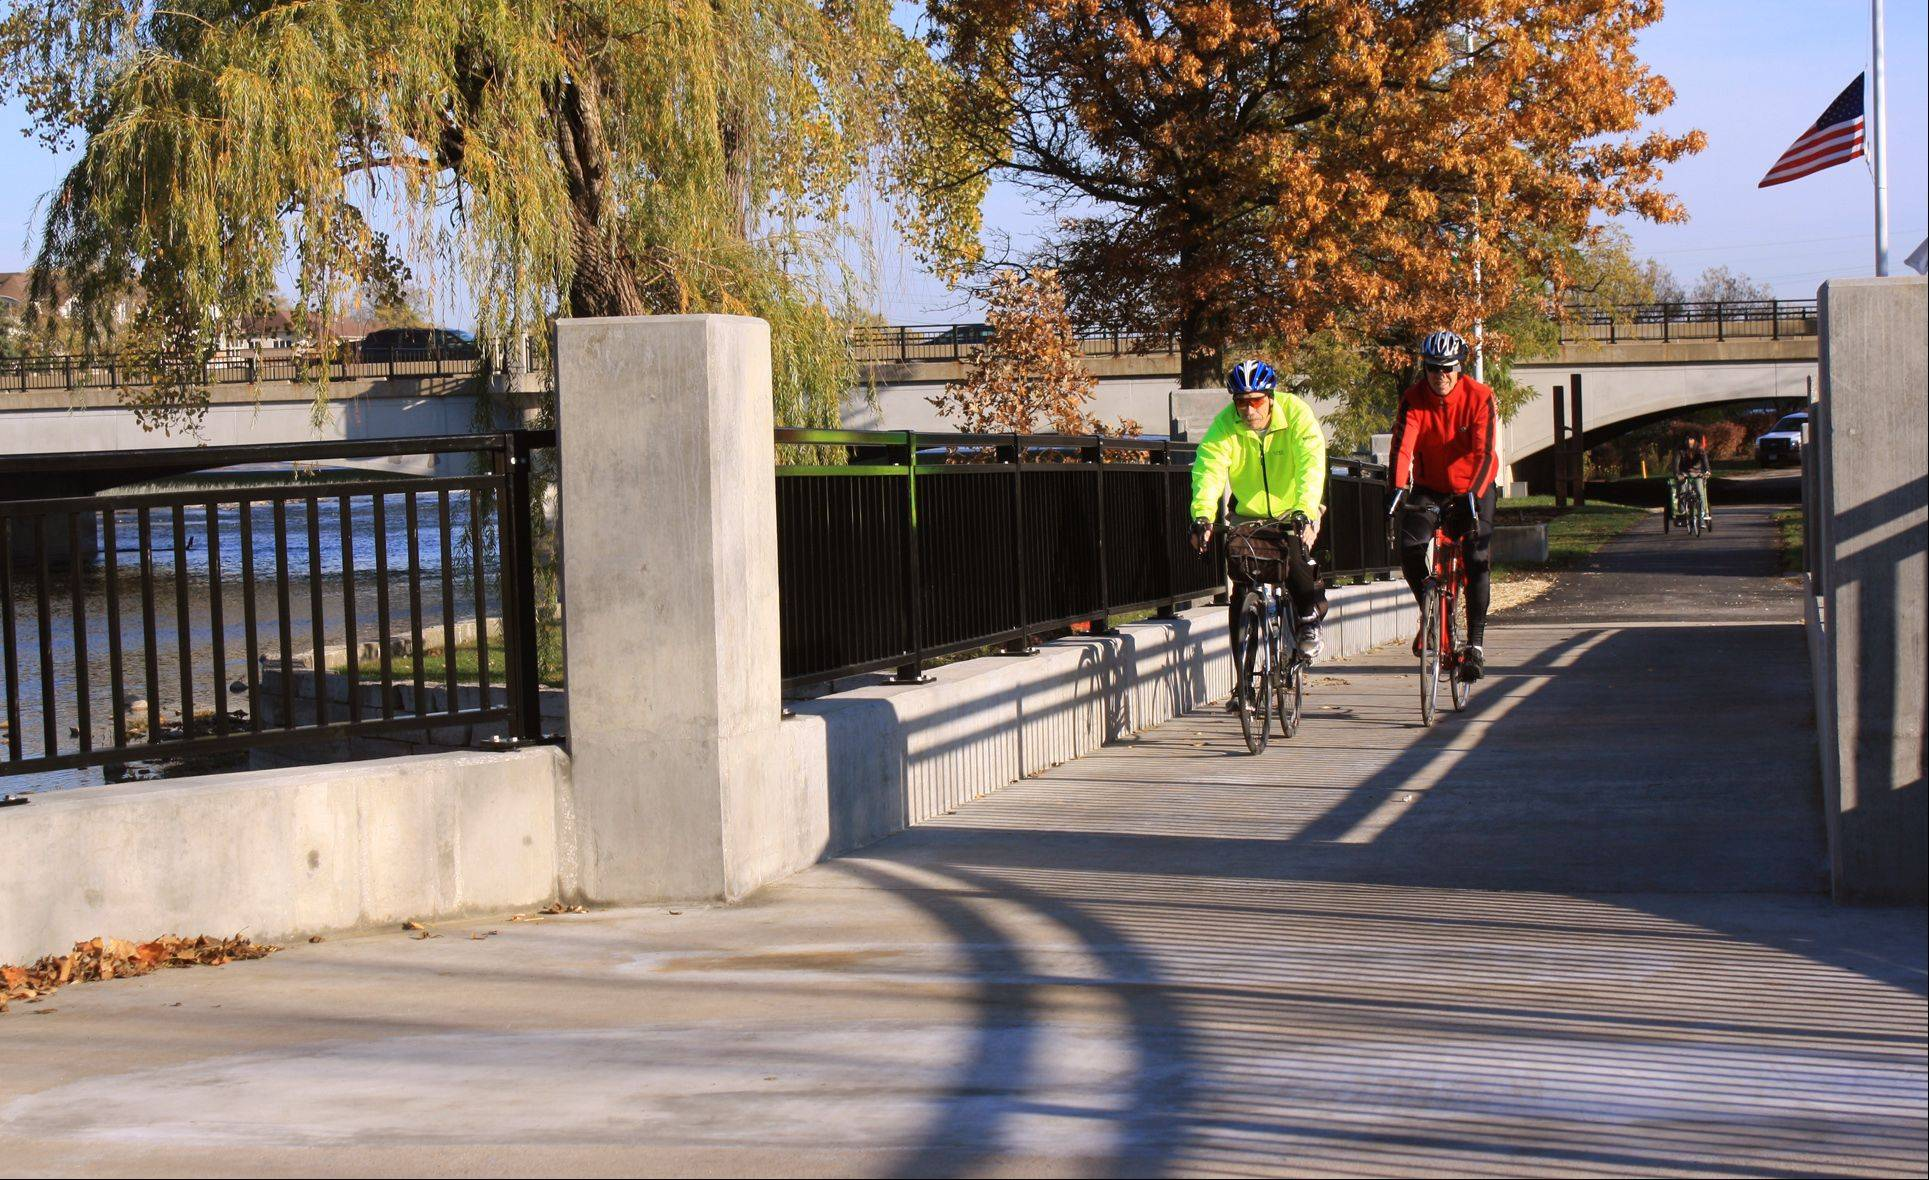 Bicyclists and pedestrians will have more room to pass on the north bridge at Island Park in Geneva, as the new bridge is several feet wider than the old.